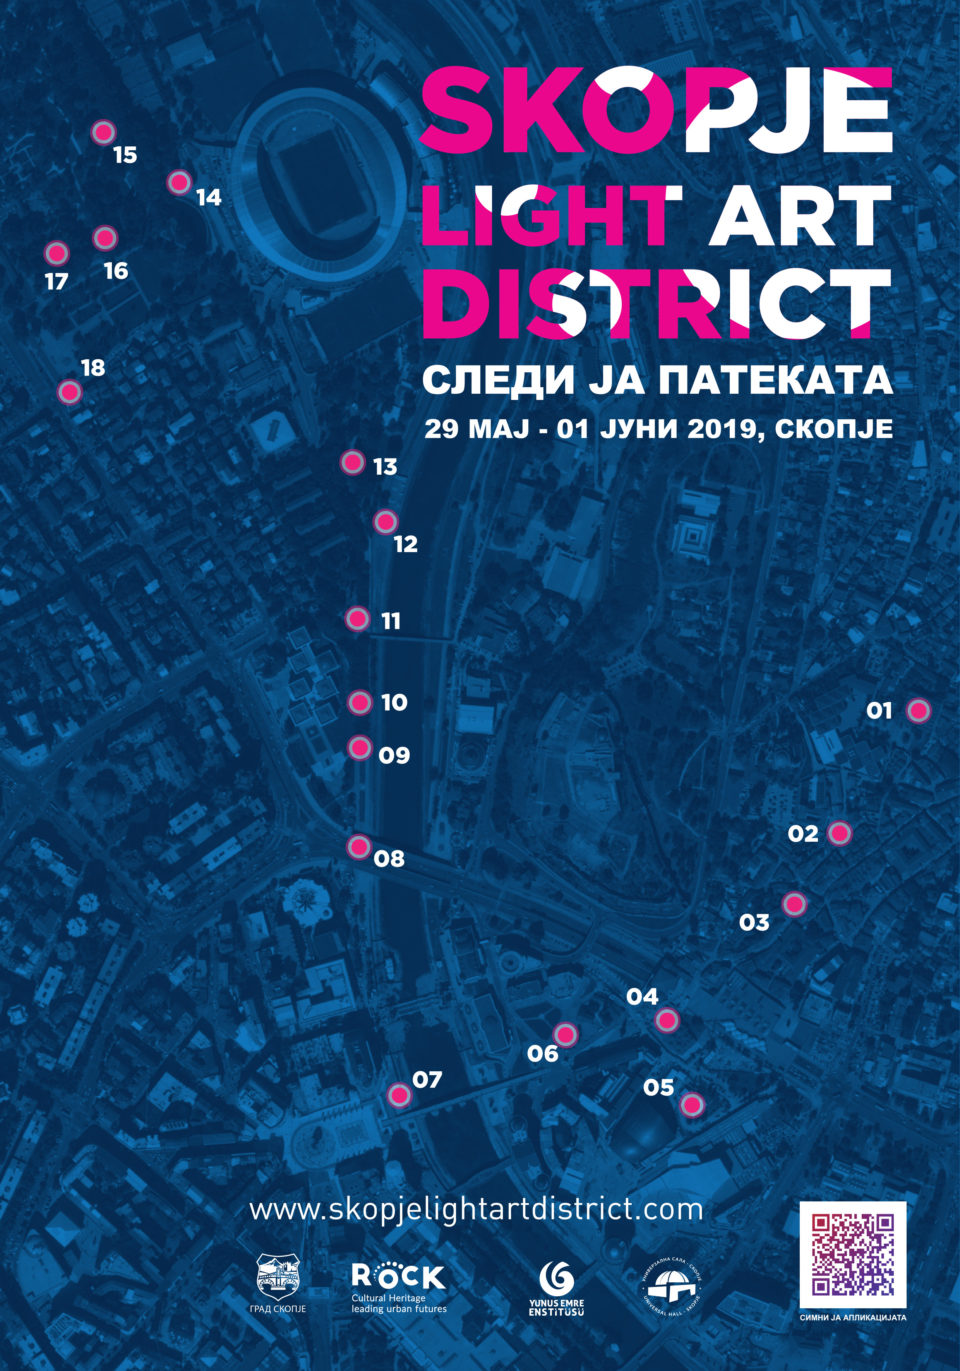 Skopje-Light-Art-District-Map-960x1371.jpg